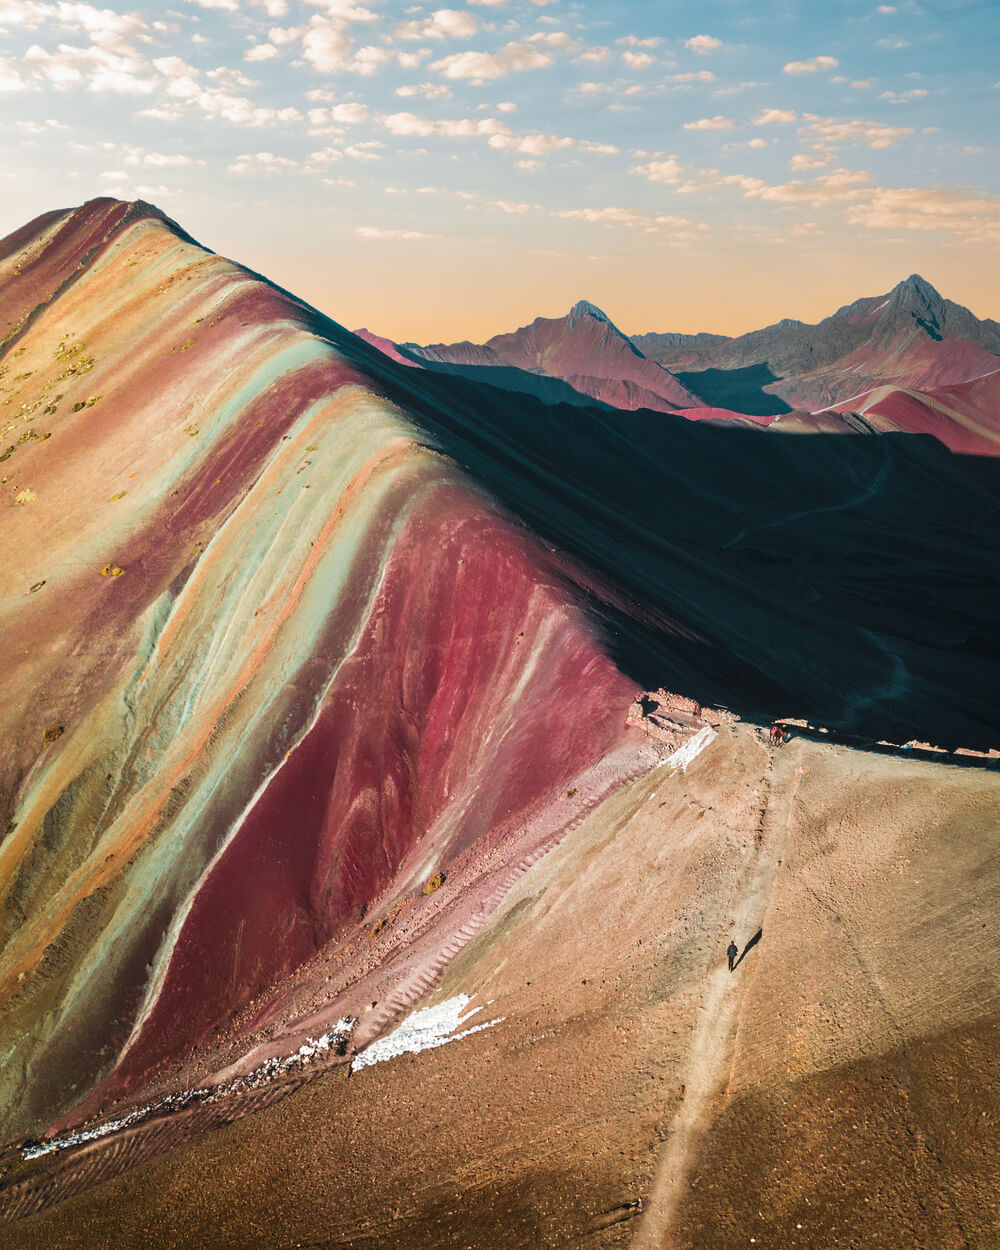 Photo of the Rainbow Mountain. Image by Jordan Hammond